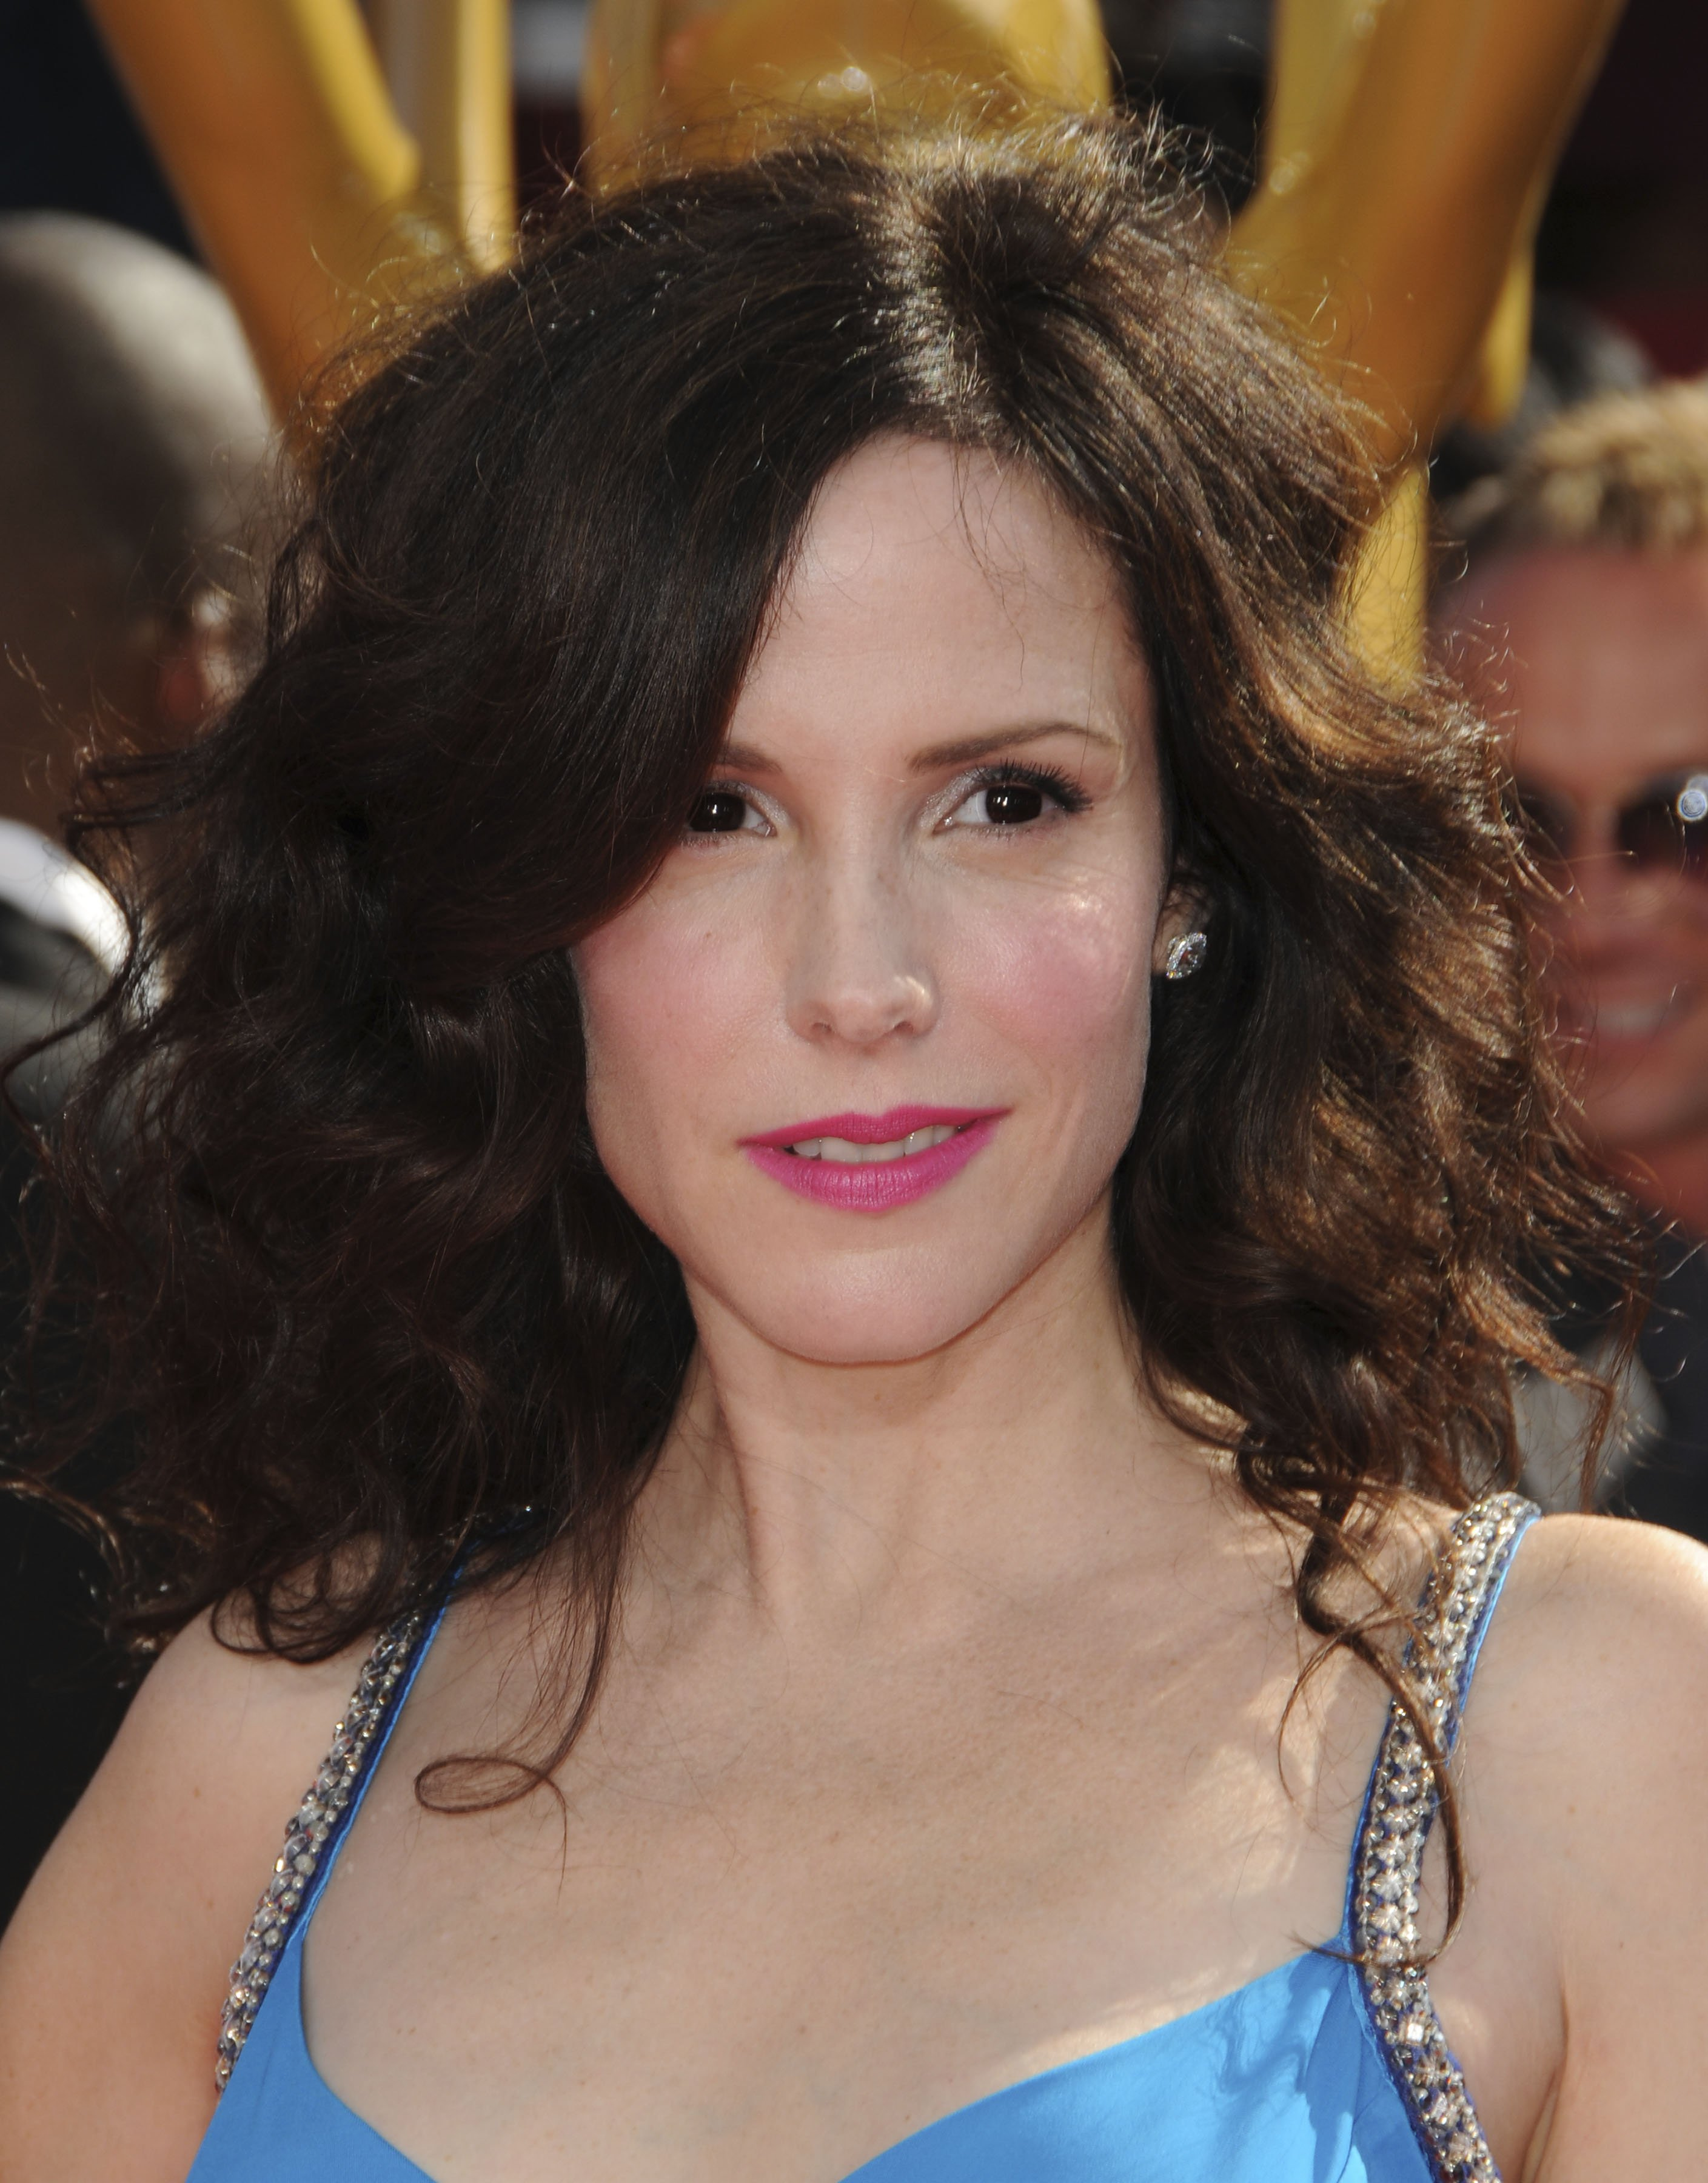 mary louise parker nude original source of image